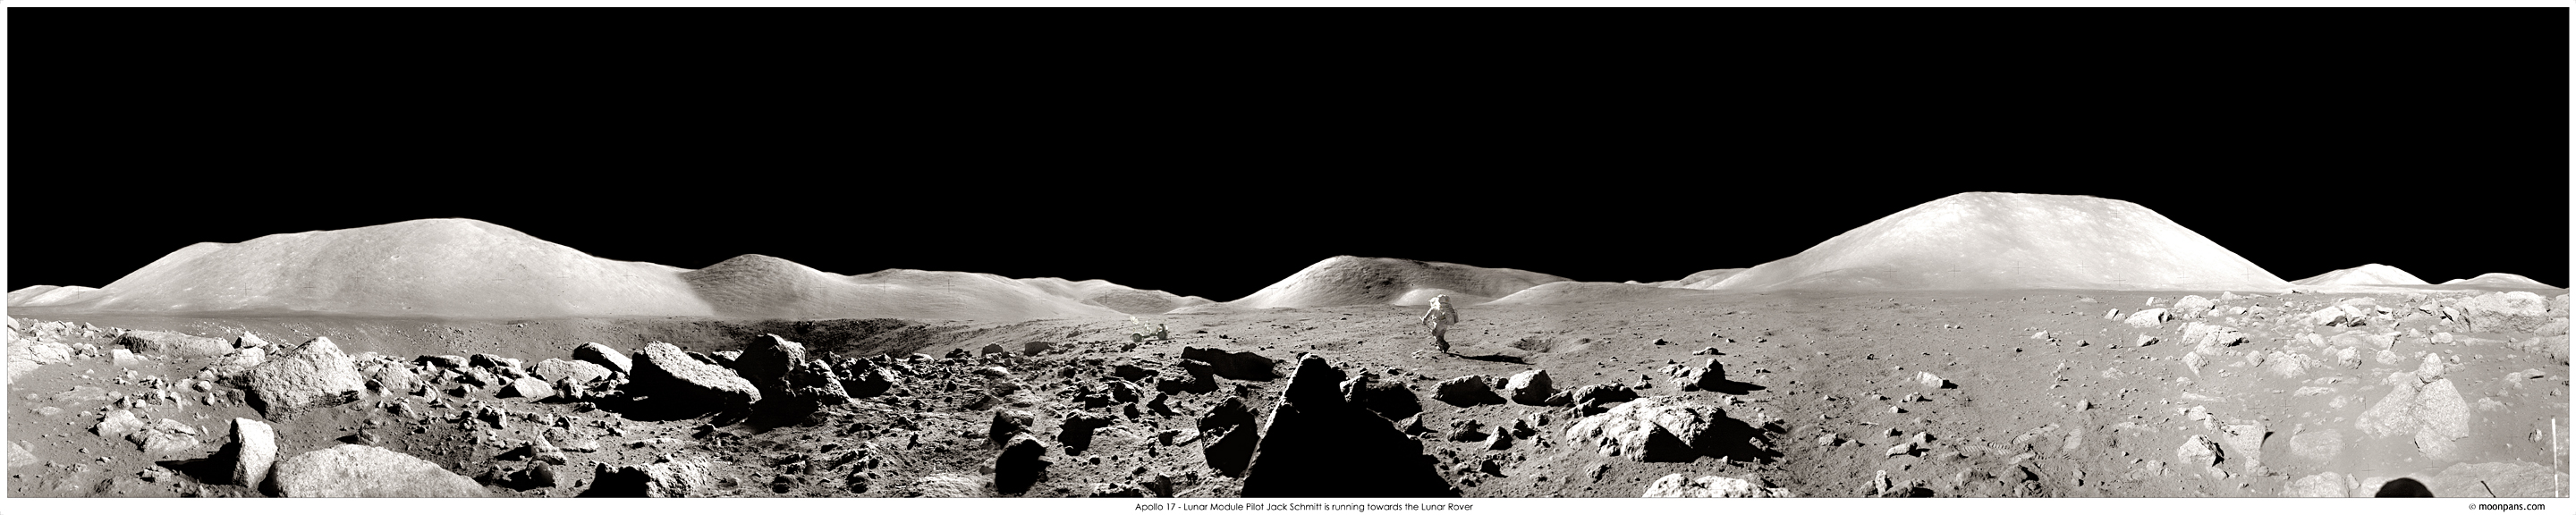 nasa archive photos of moon - photo #42